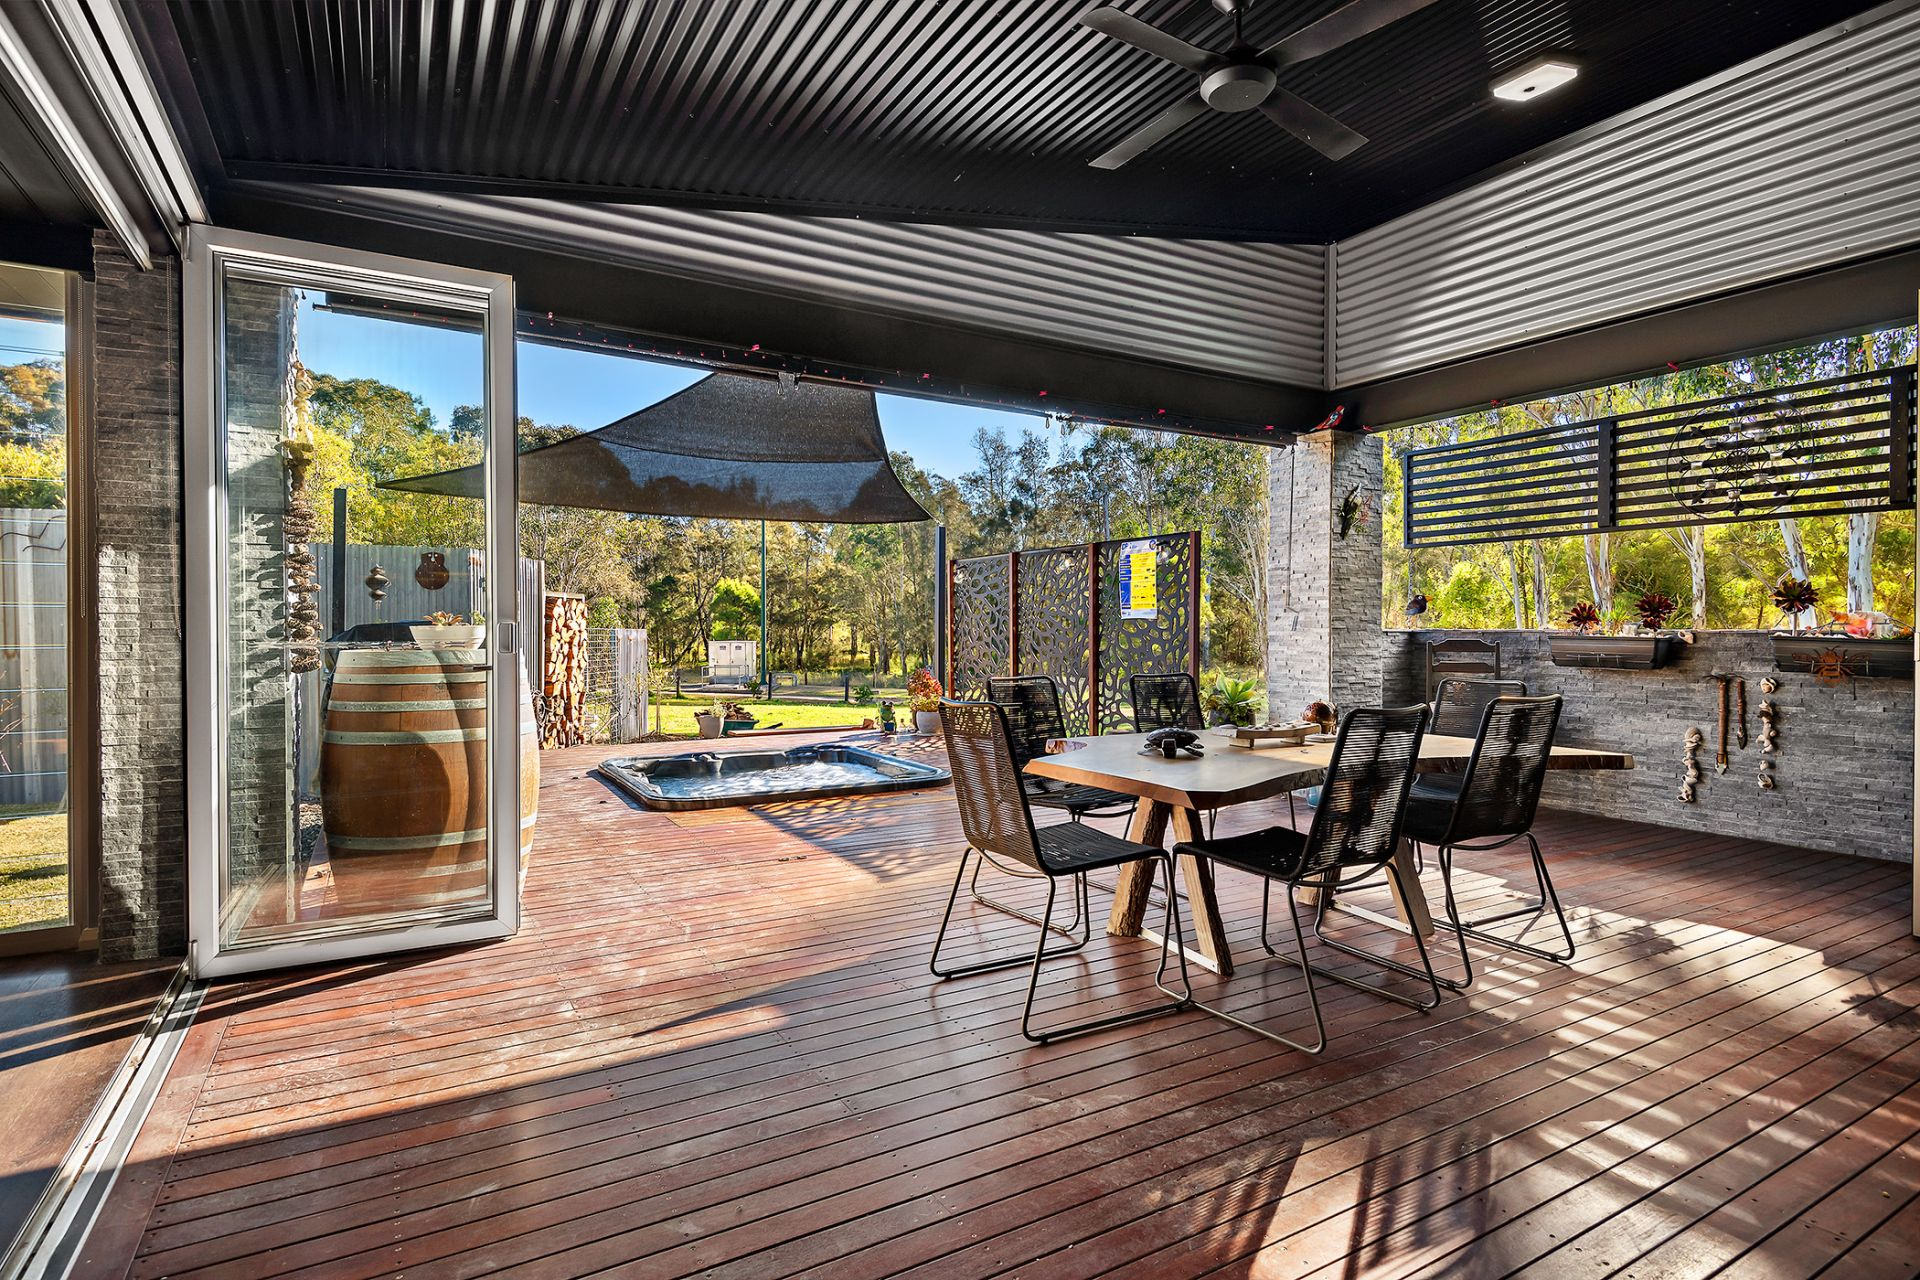 Stunning bespoke home with tranquil Hunter Valley vibes